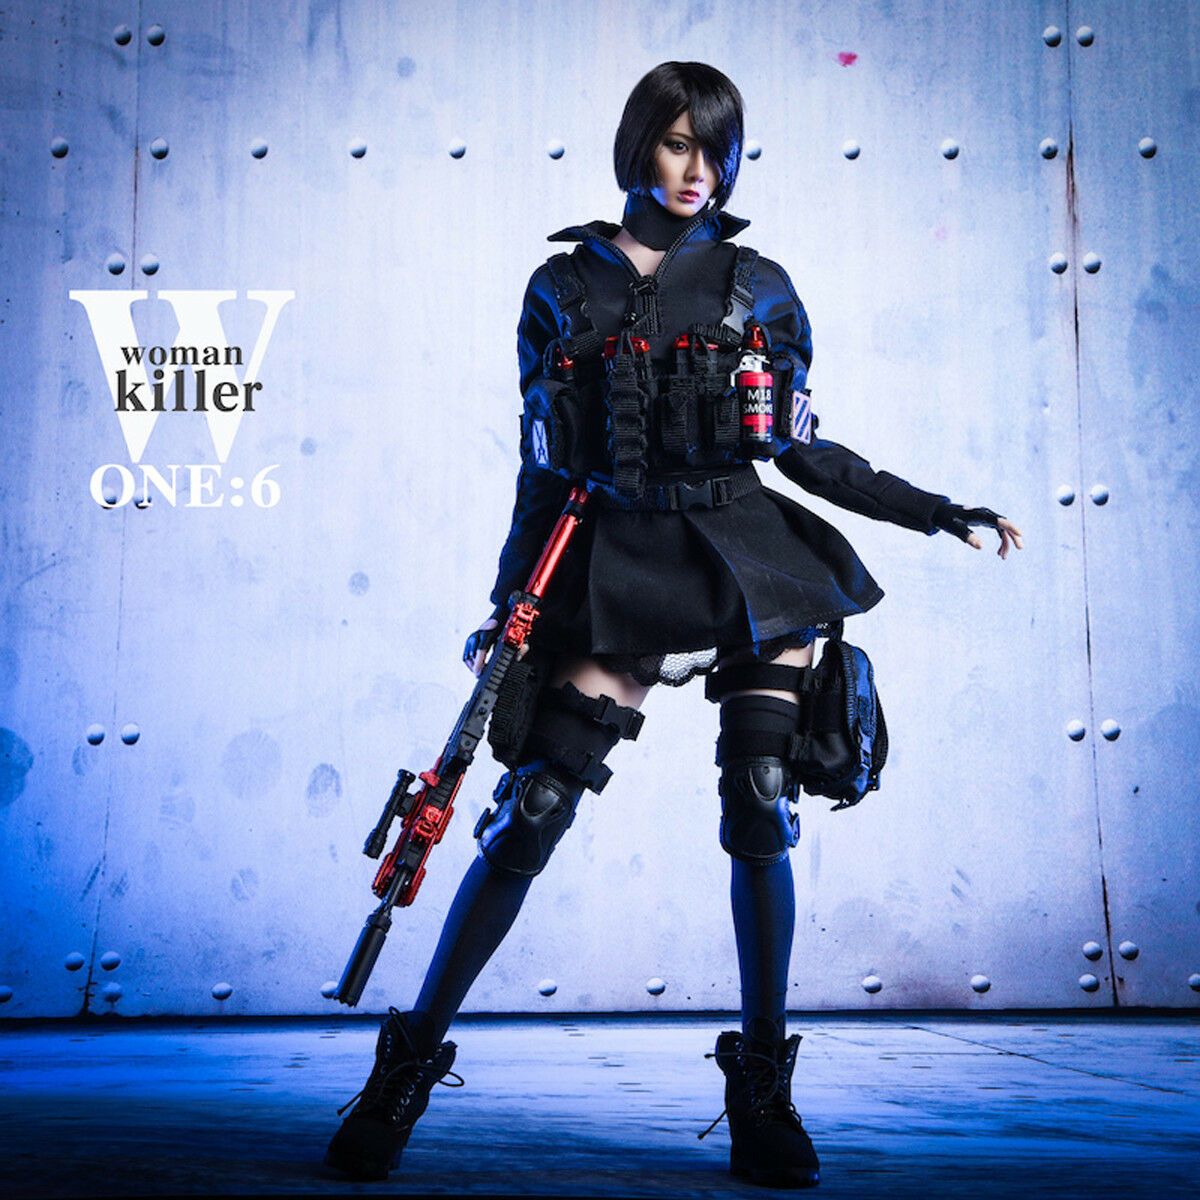 VSTOYS 1 6th 18XG27 18XG27 18XG27 Female Assassin Women Killer Combat Clothing Set Model Toys 83bc5d